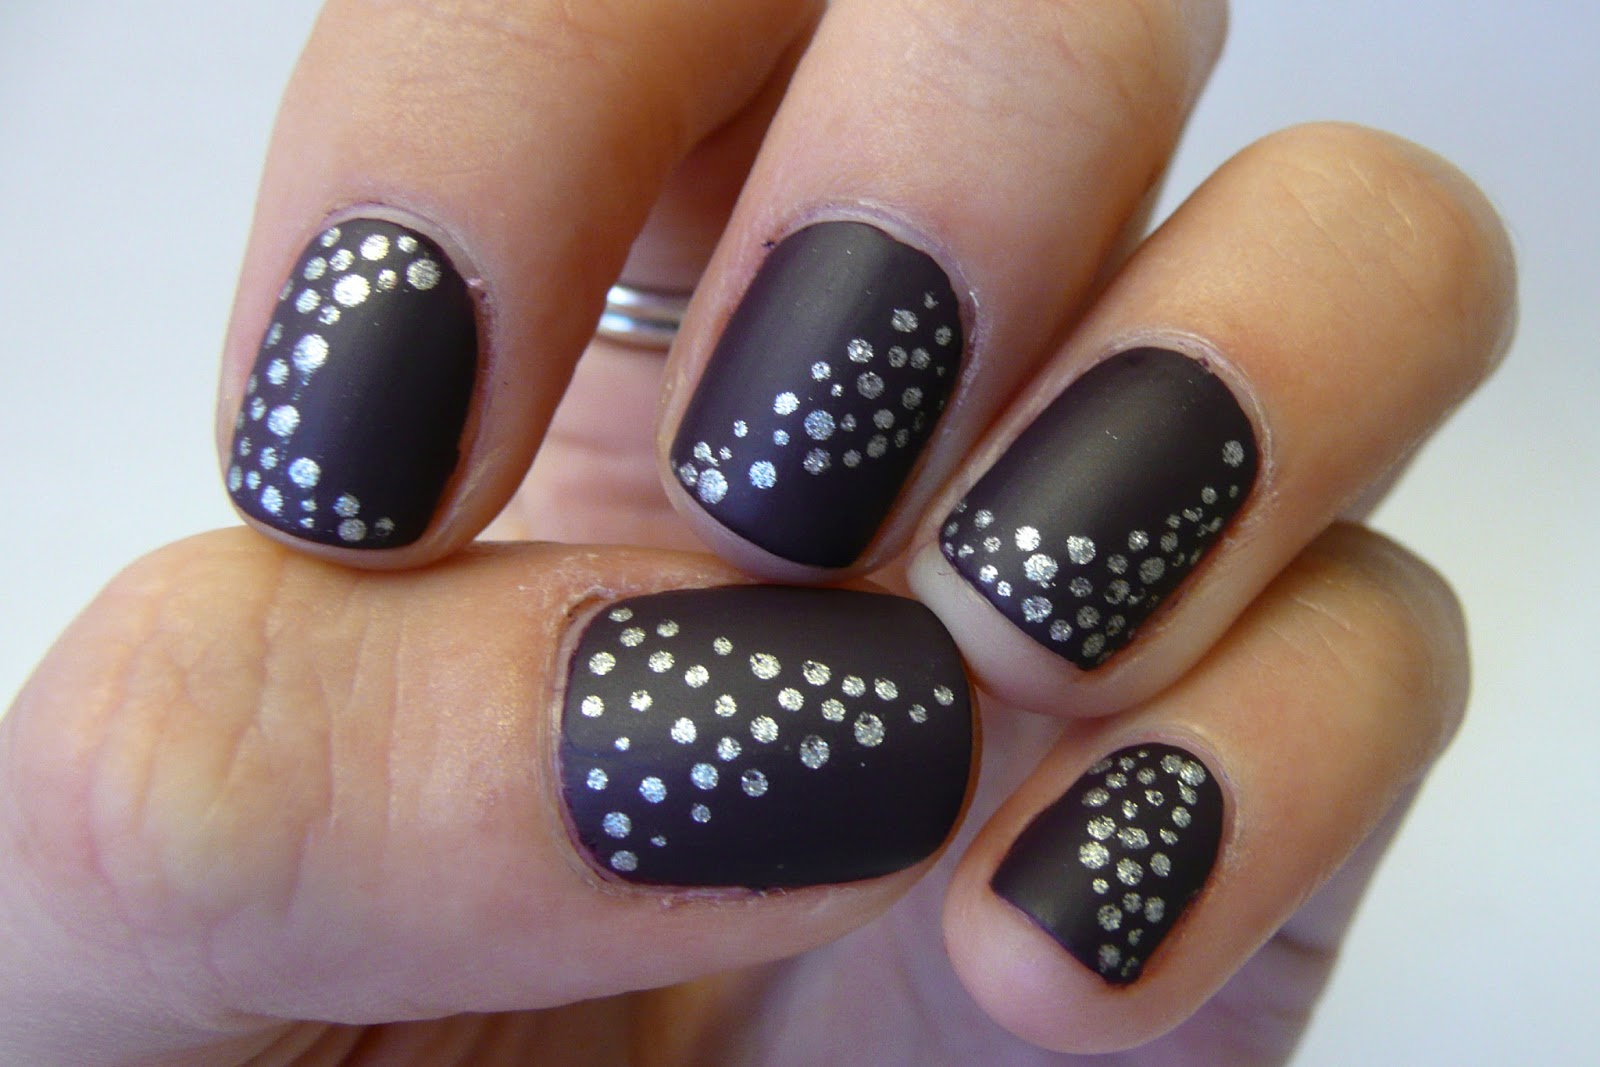 Amazing winter nail art designs 2015 fashionip amazing winter nail art designs 2015 prinsesfo Images